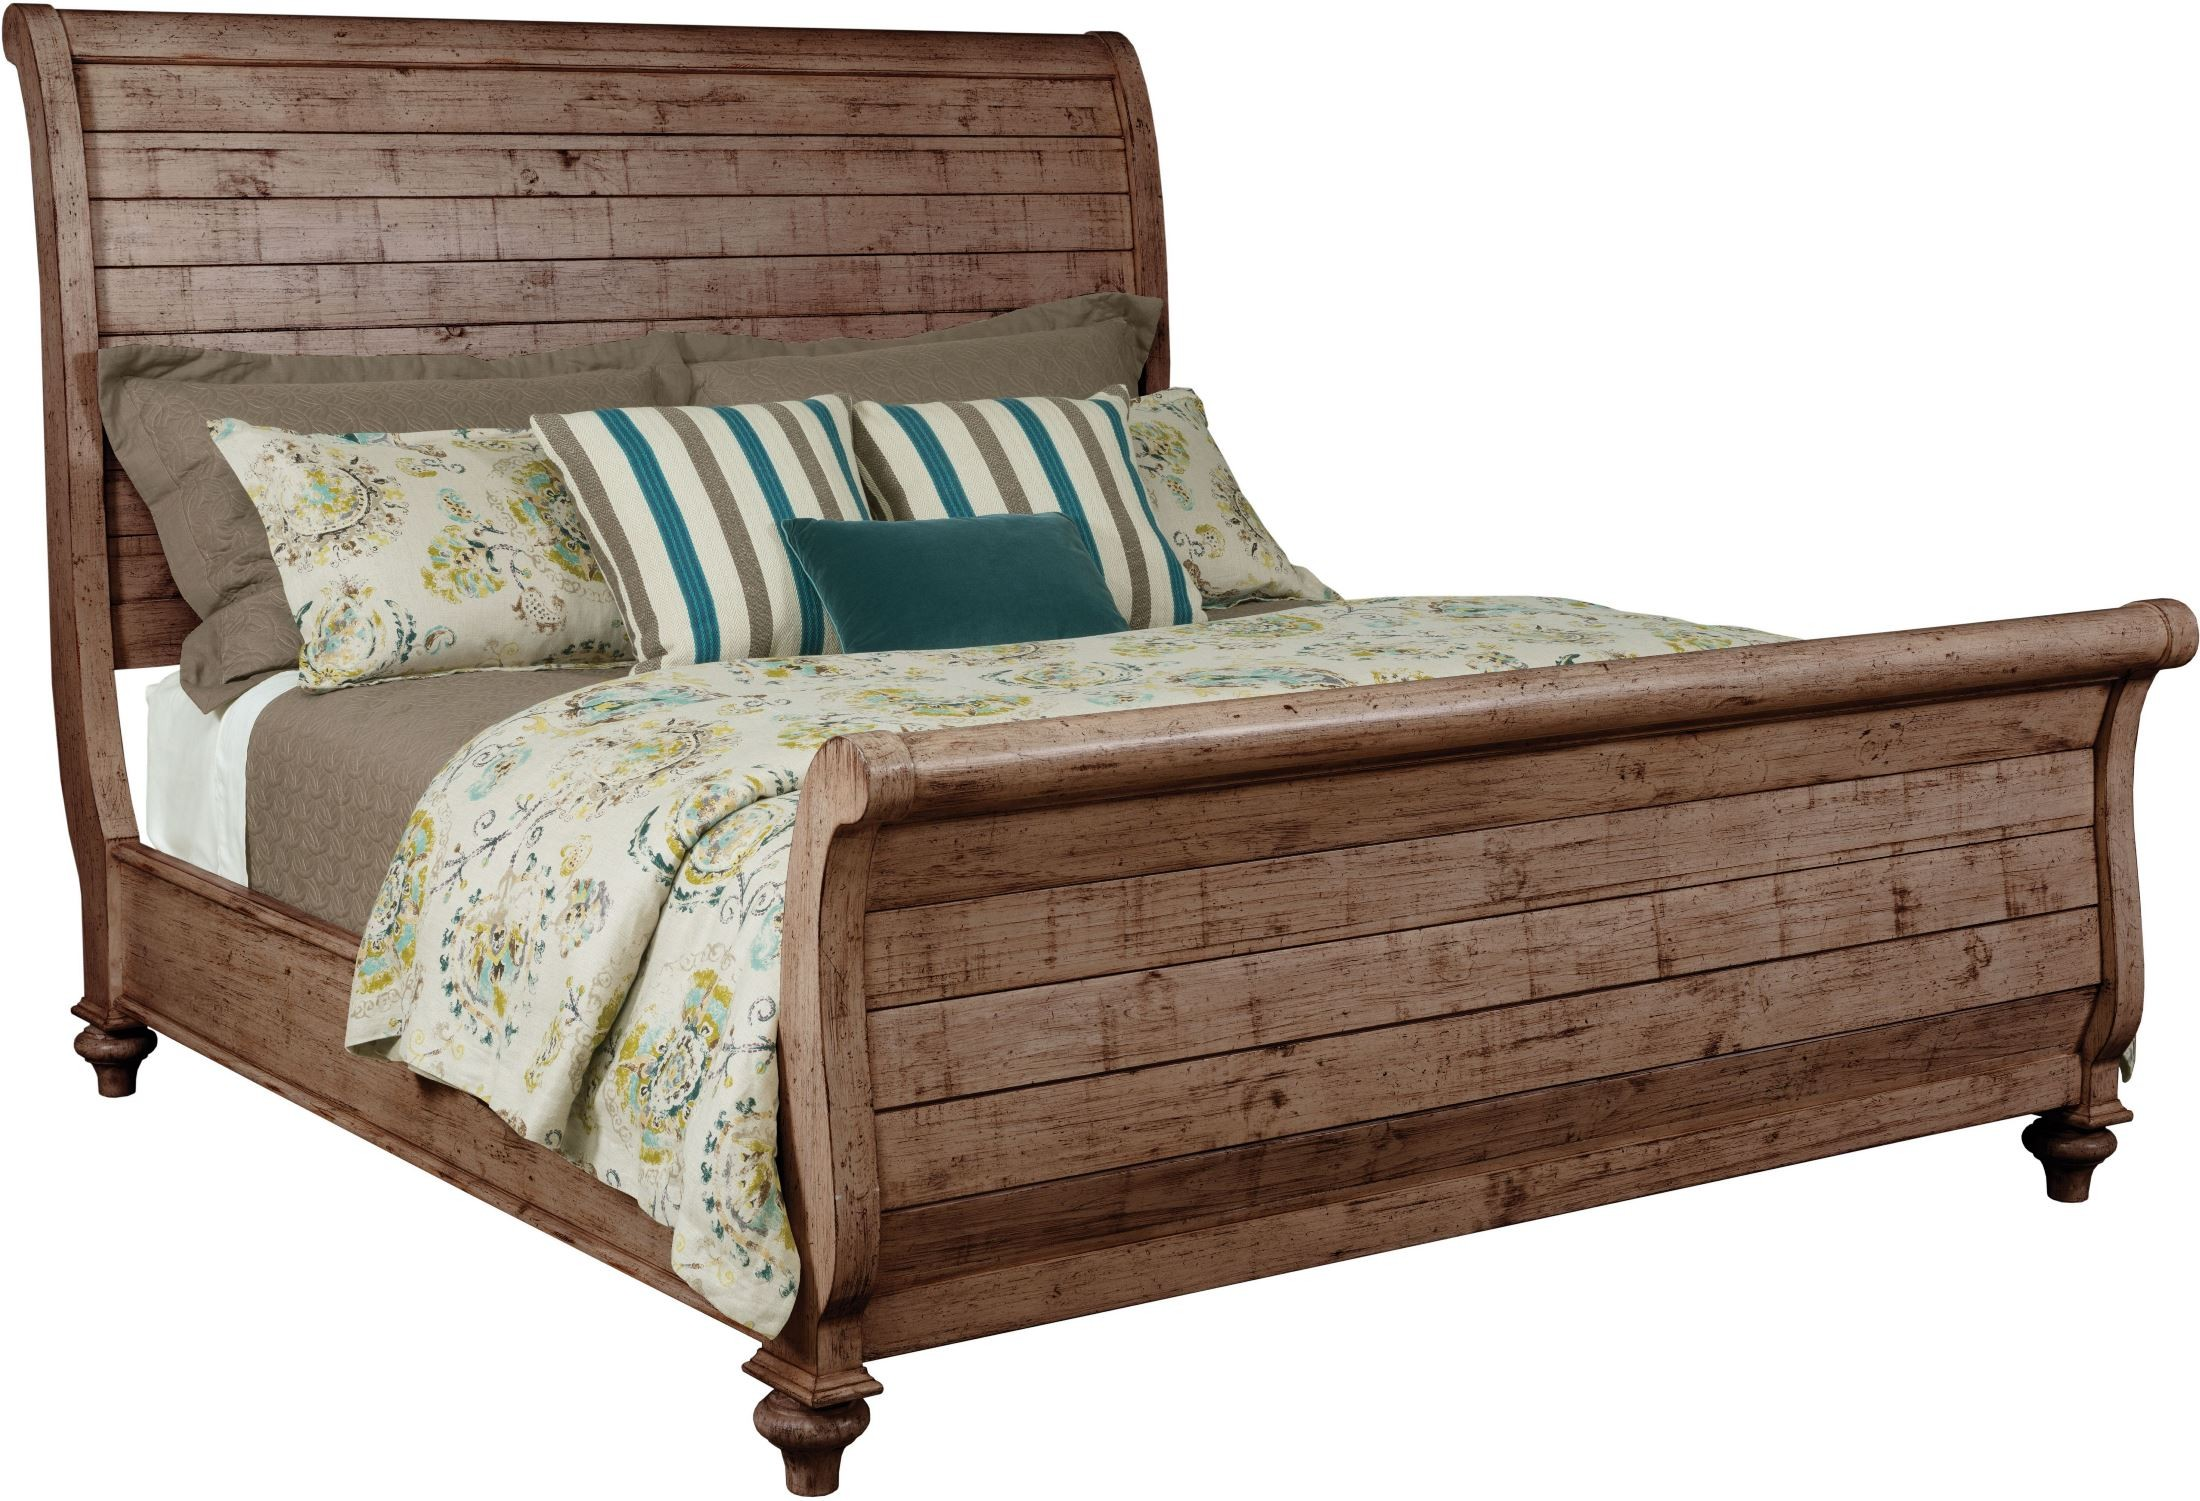 kincaid sofas reviews sofa couch cushion covers weatherford heather lynton queen sleigh bed from